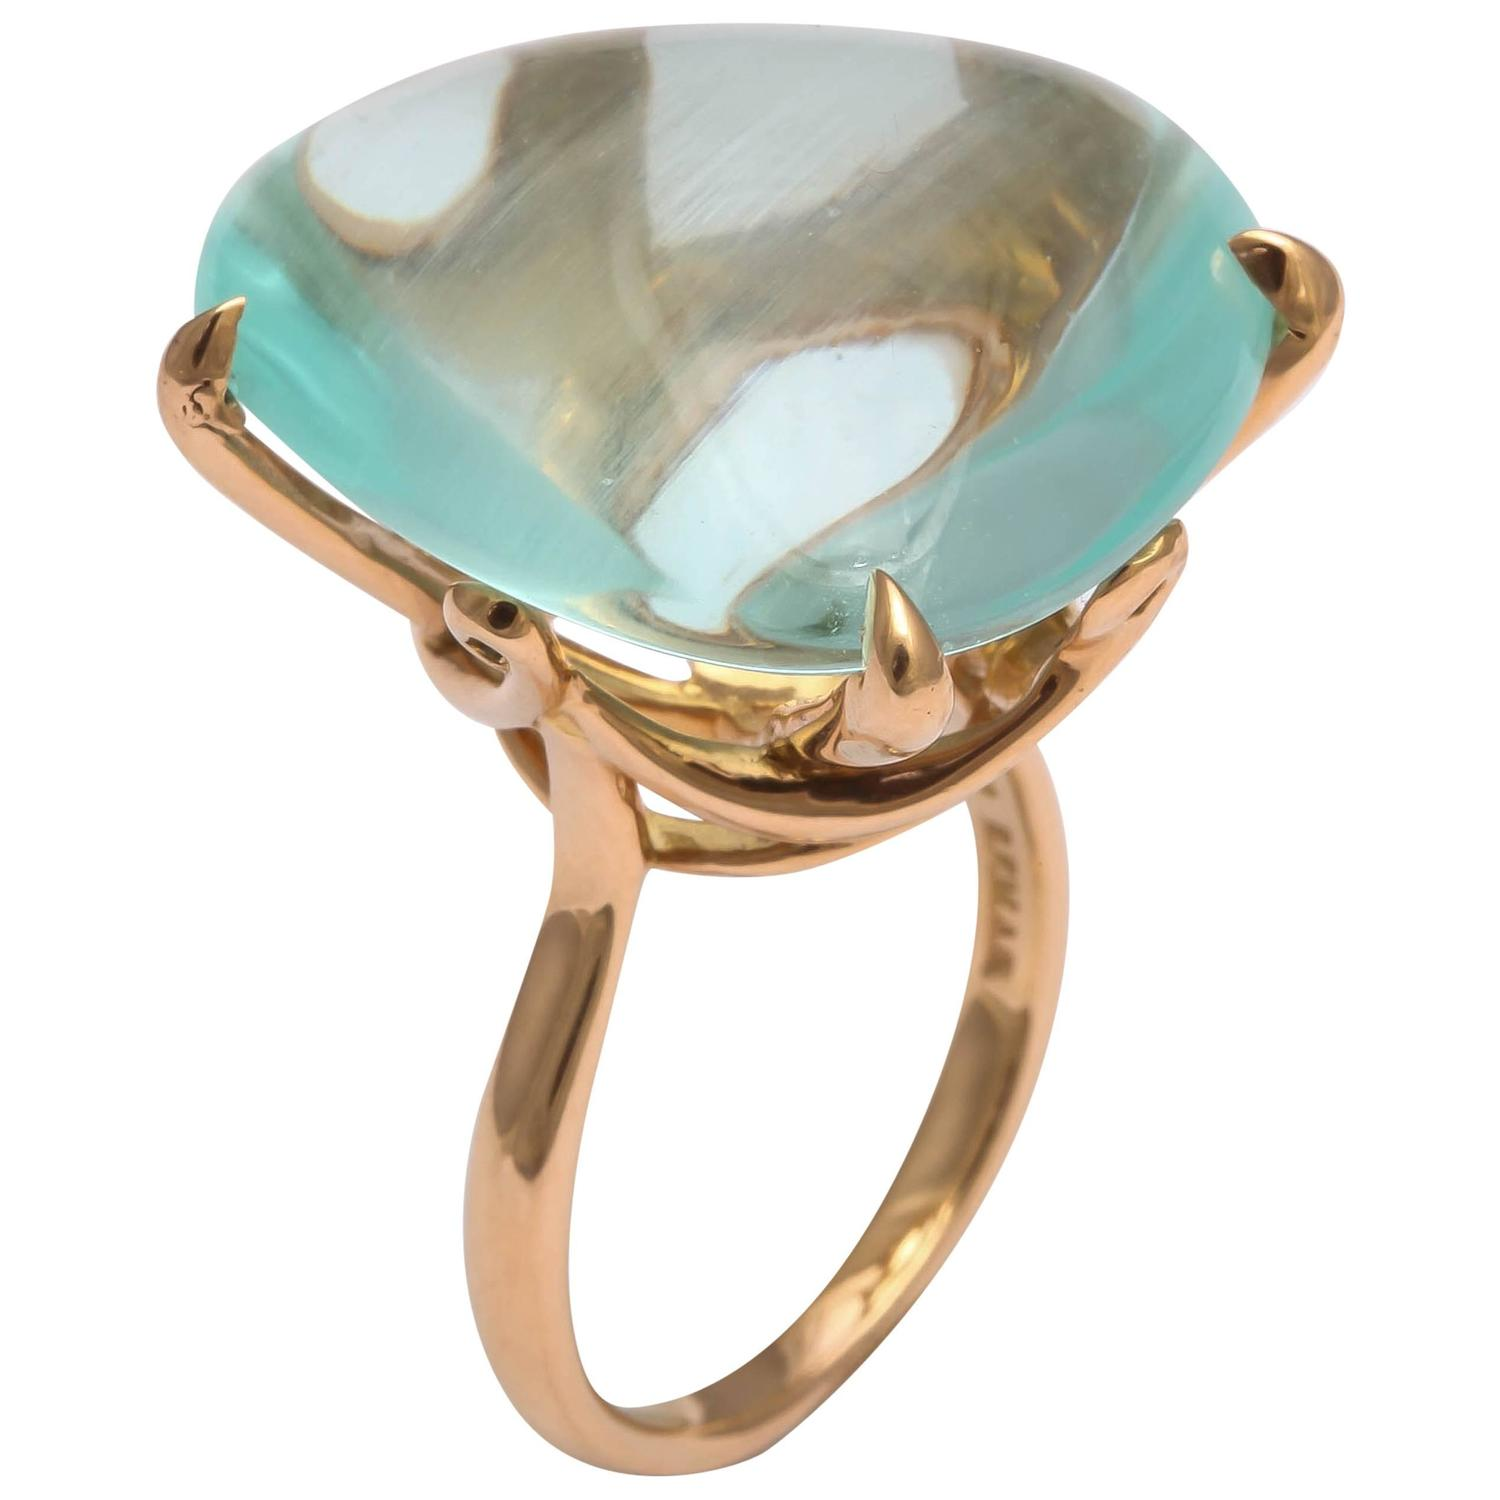 faraone mennella aquamarine gold ring for sale at 1stdibs